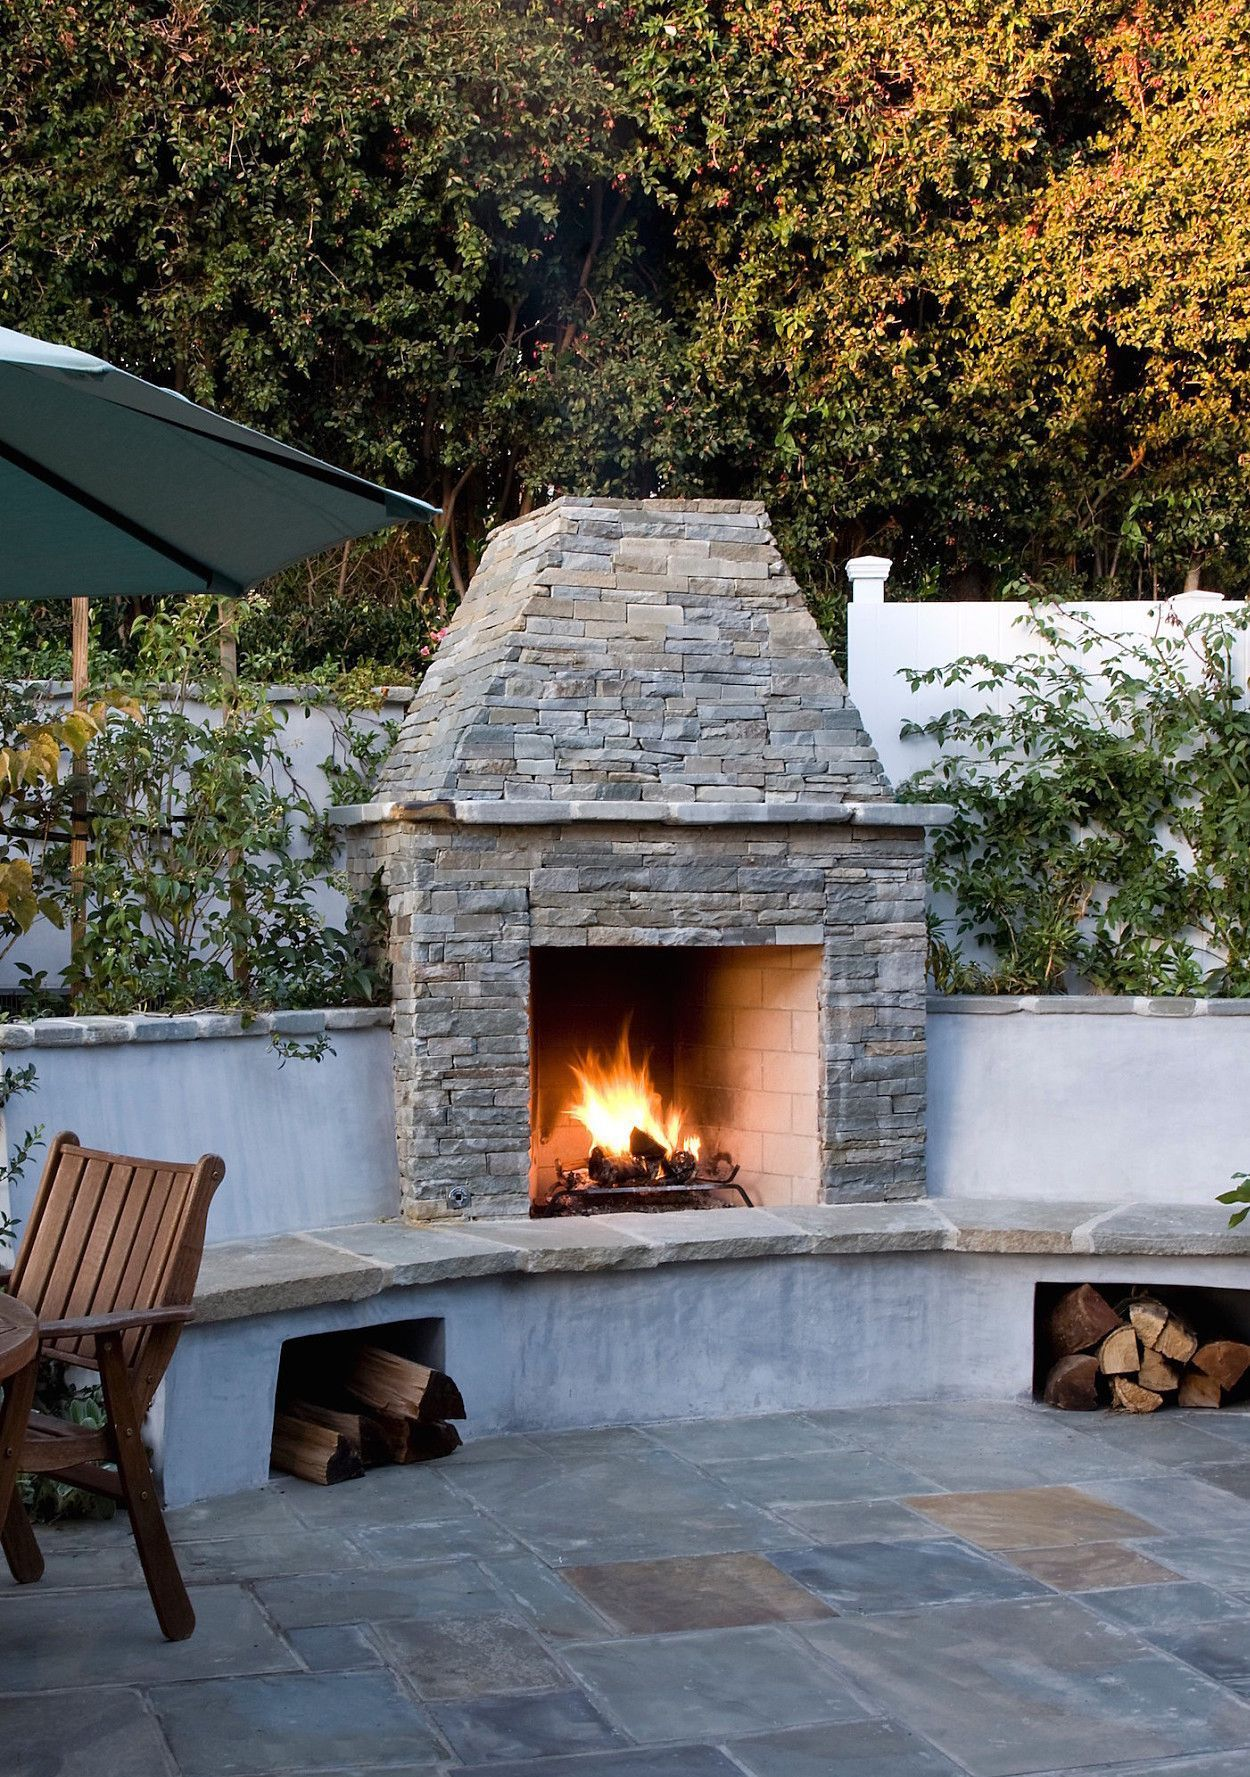 The Most Creative Backyard Decorating Ideas Outdoor Fire Pit